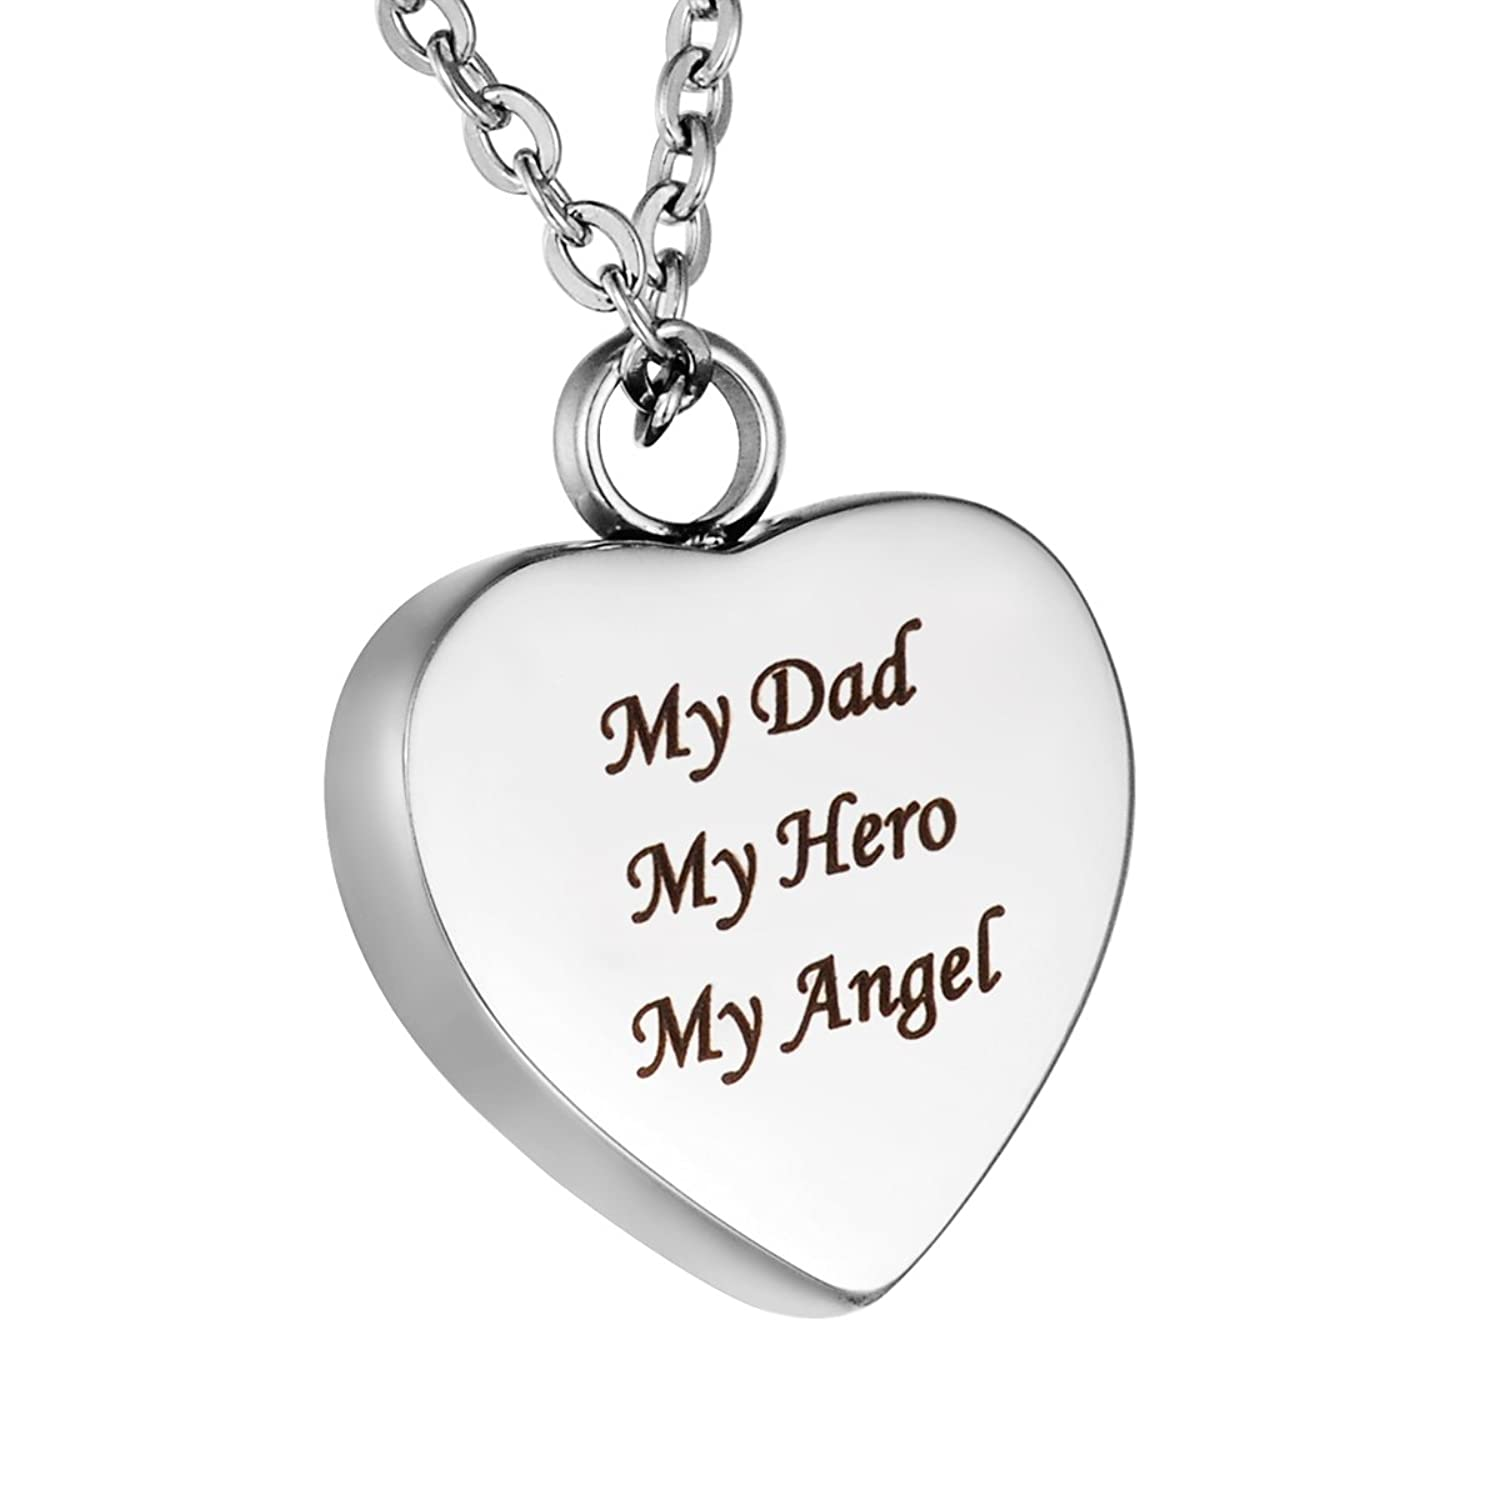 HooAMI My Dad My Hero My Angel Cremation Jewelry Urn Necklace Pendant